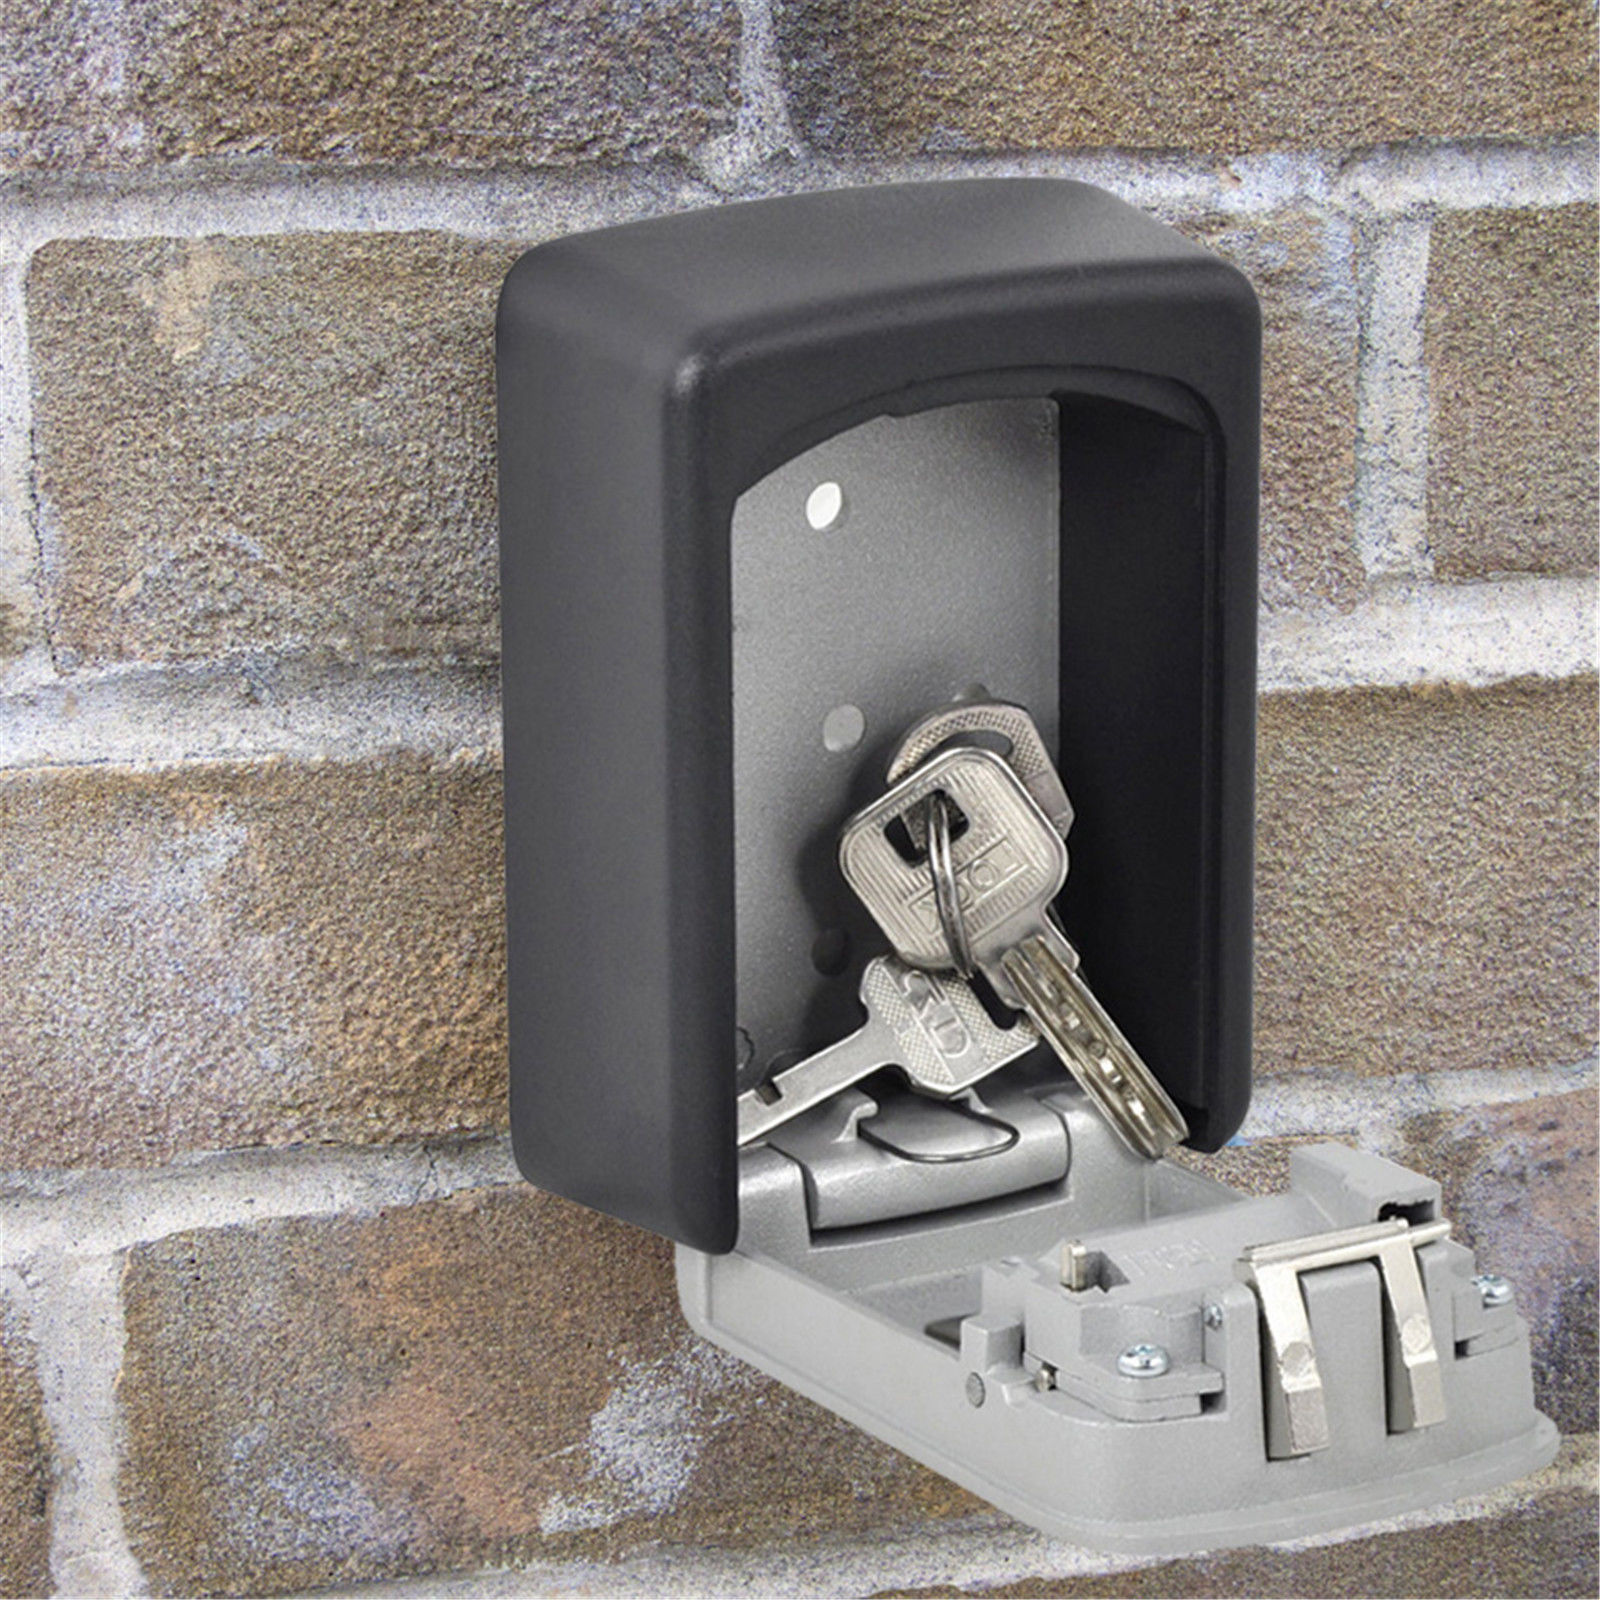 Wall Mount Key Box Home Security Custom Combination 4 Digit Lock Safe Storage Ebay